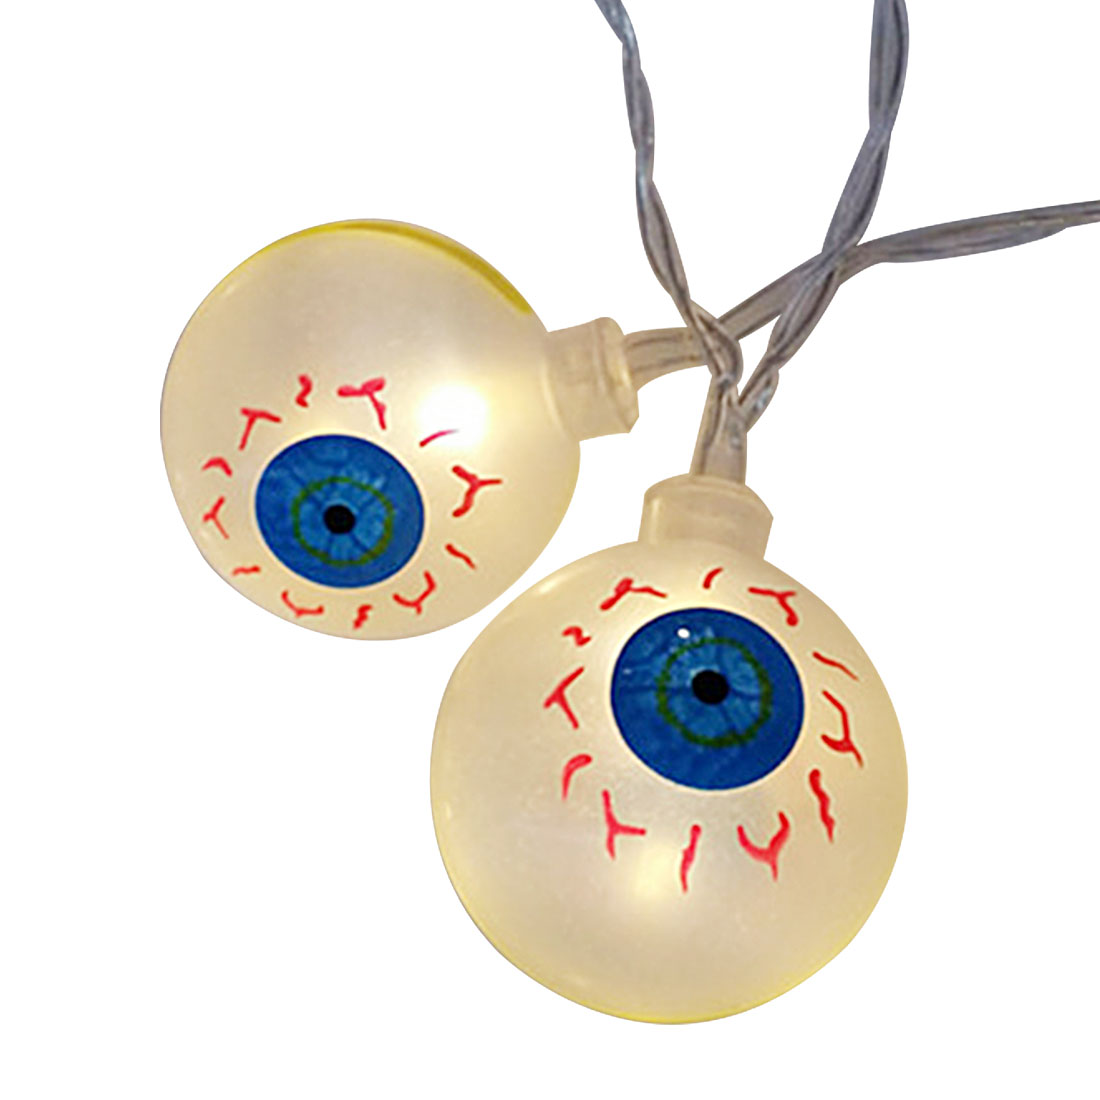 New Best 10LED 1.2M Eyeballs Halloween Decor LED String Lights Lanterns Lamp for DIY Home Bar Outdoor Party Supplies